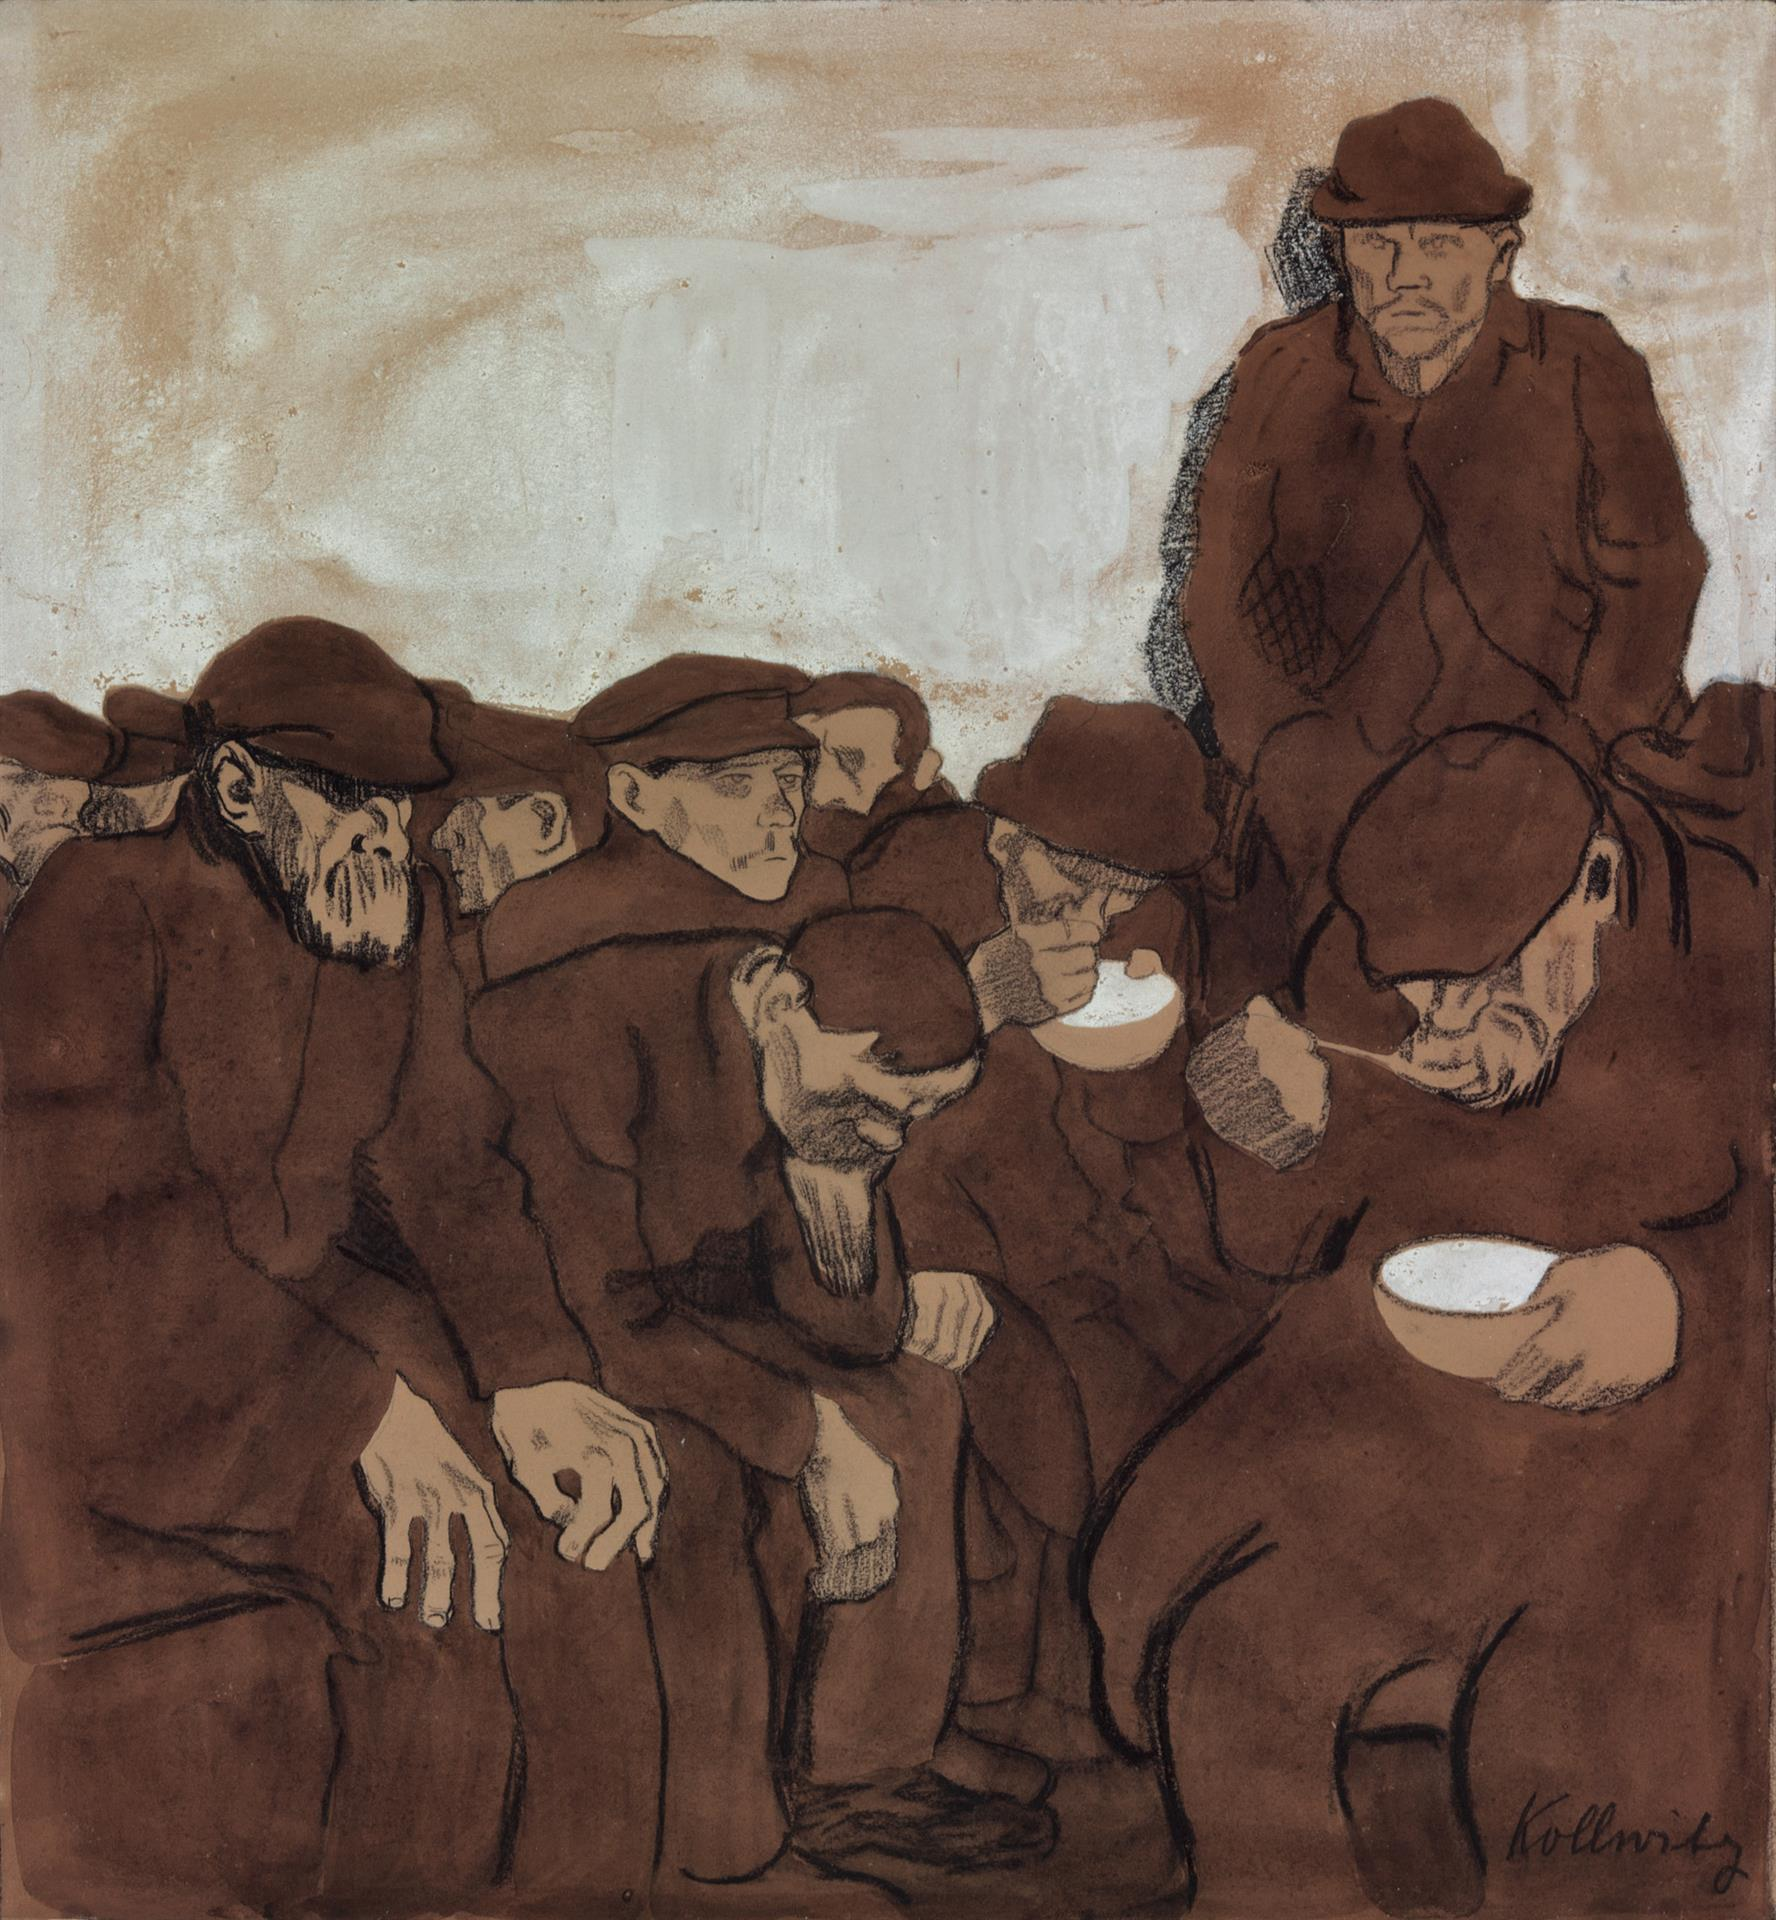 Käthe Kollwitz, Warm Shelter, 1908/1909, black crayon, pen and brush with ink and sepia on olive-green paper, white highlights in the background, NT (469a), Cologne Kollwitz Collection © Käthe Kollwitz Museum Köln